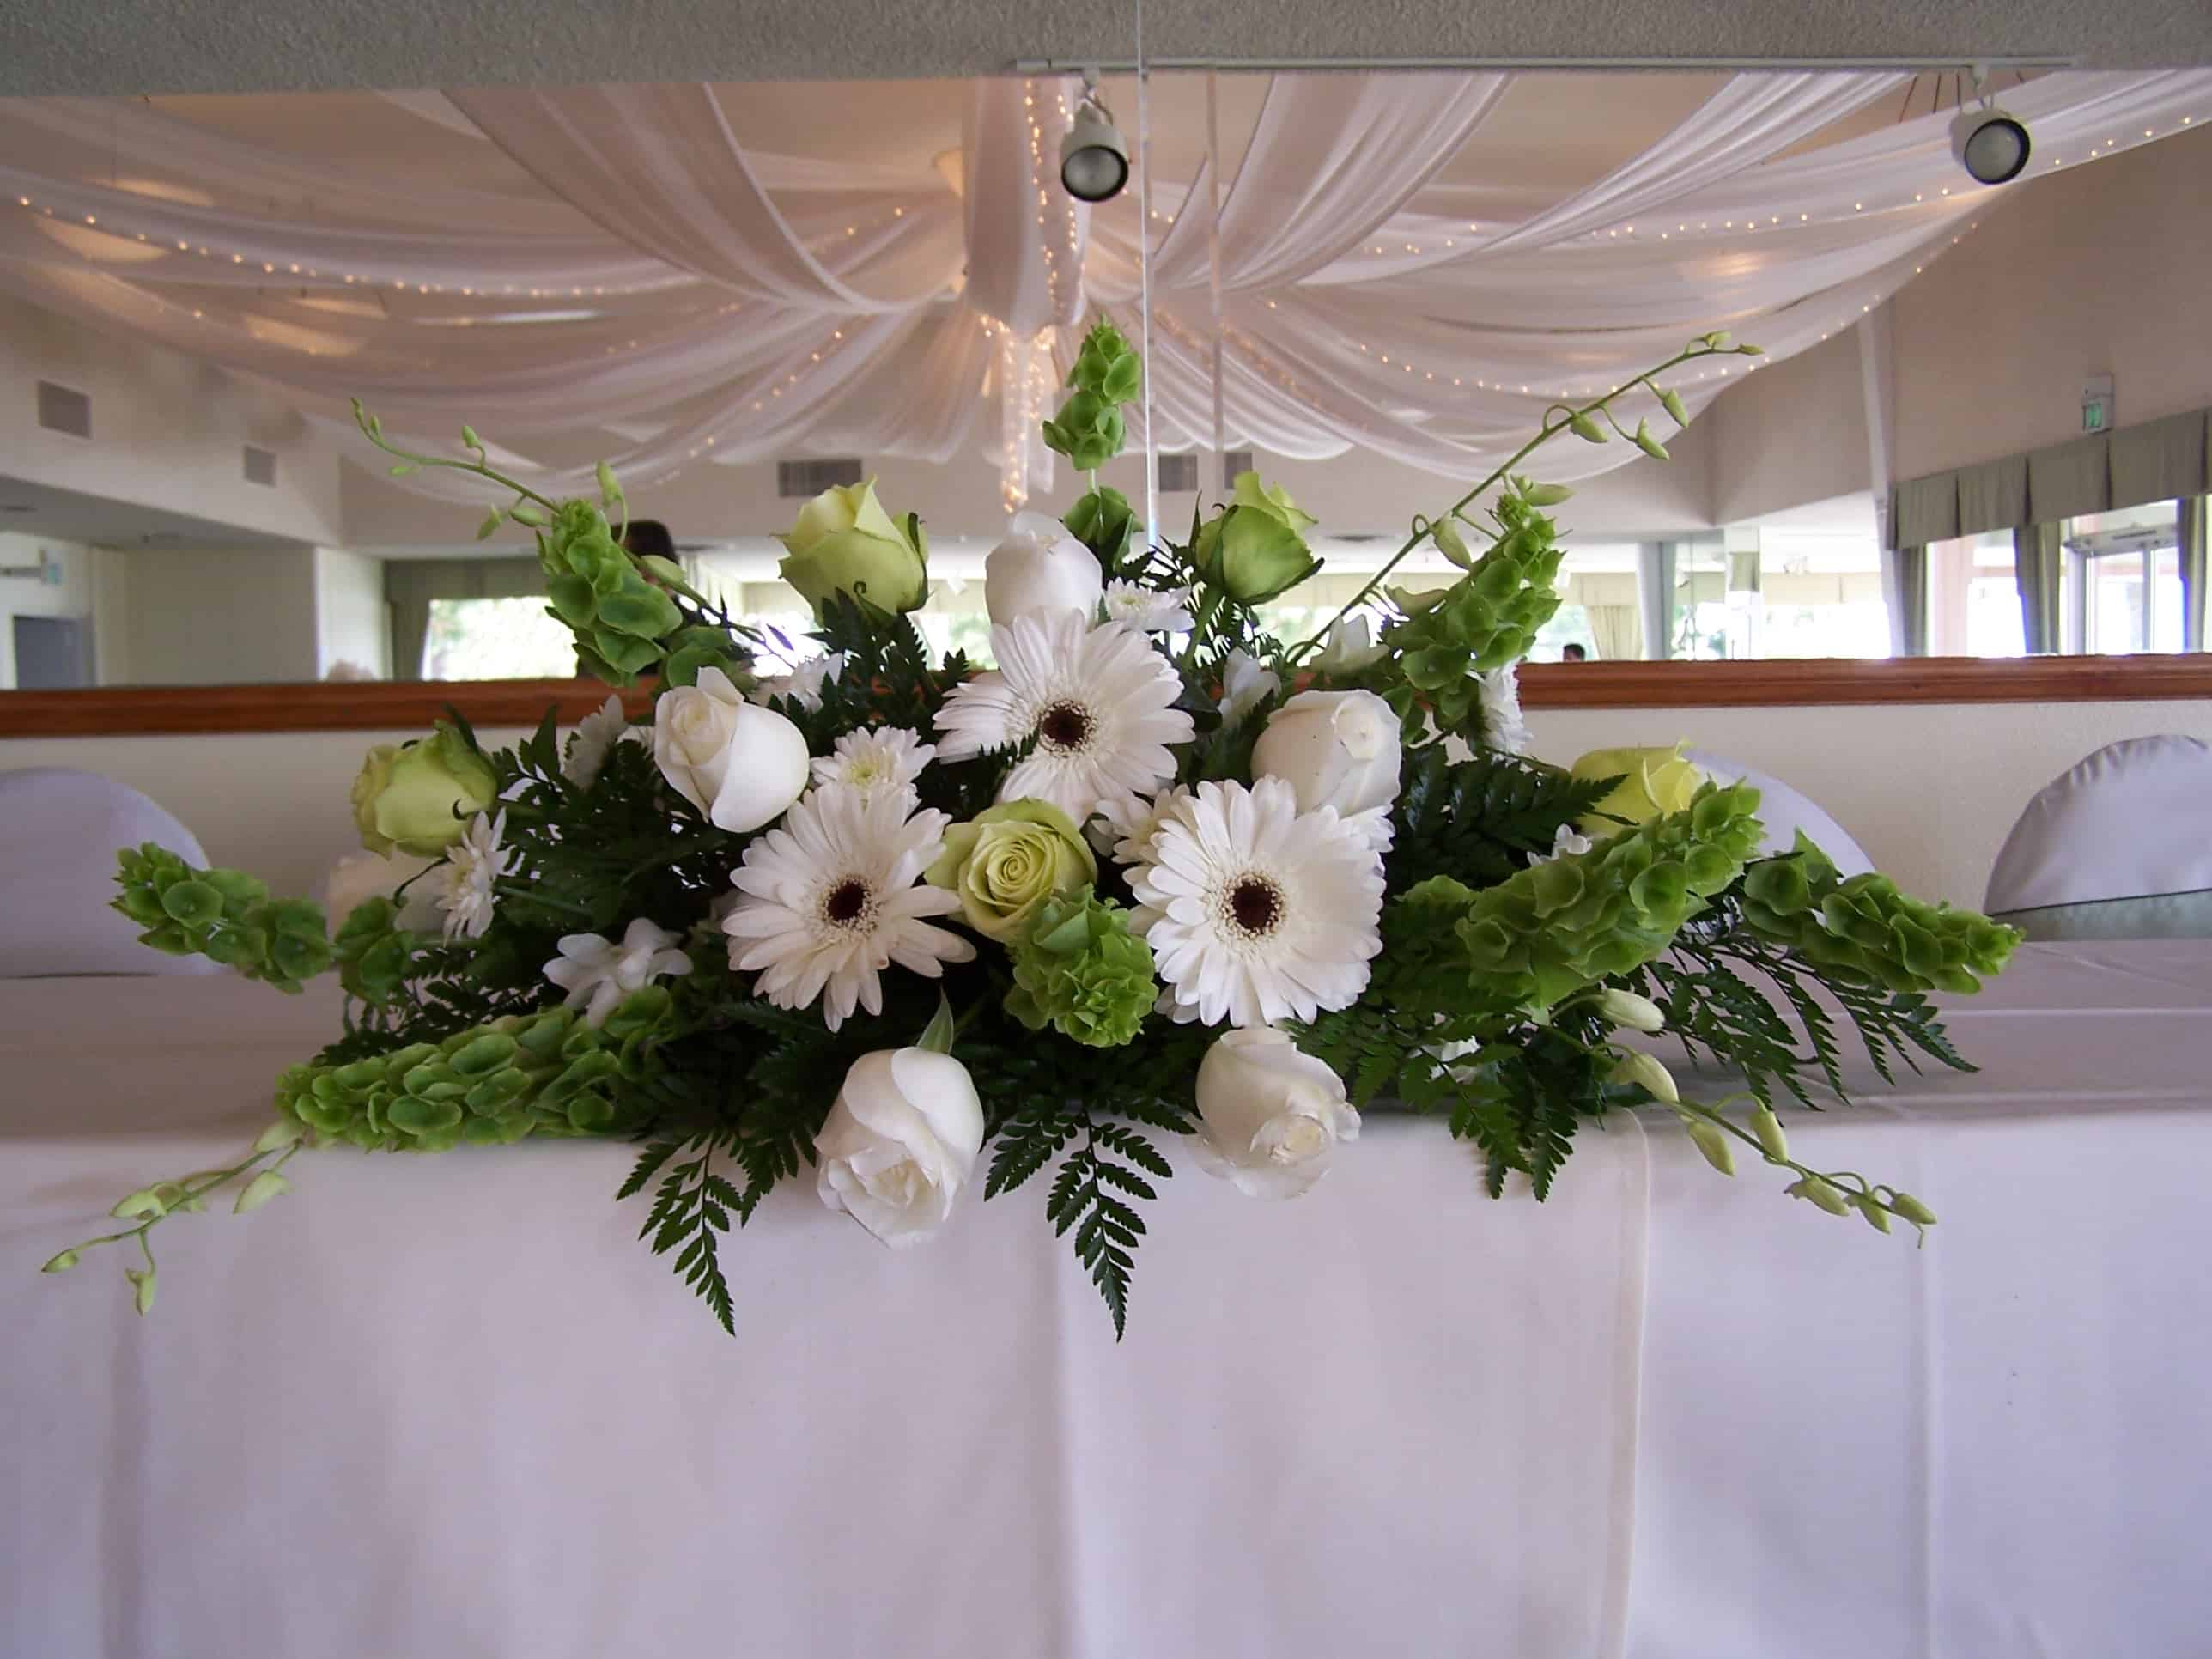 Home wedding flowers 4 less wedding flowers home 44 piece premium complete wedding flower package izmirmasajfo